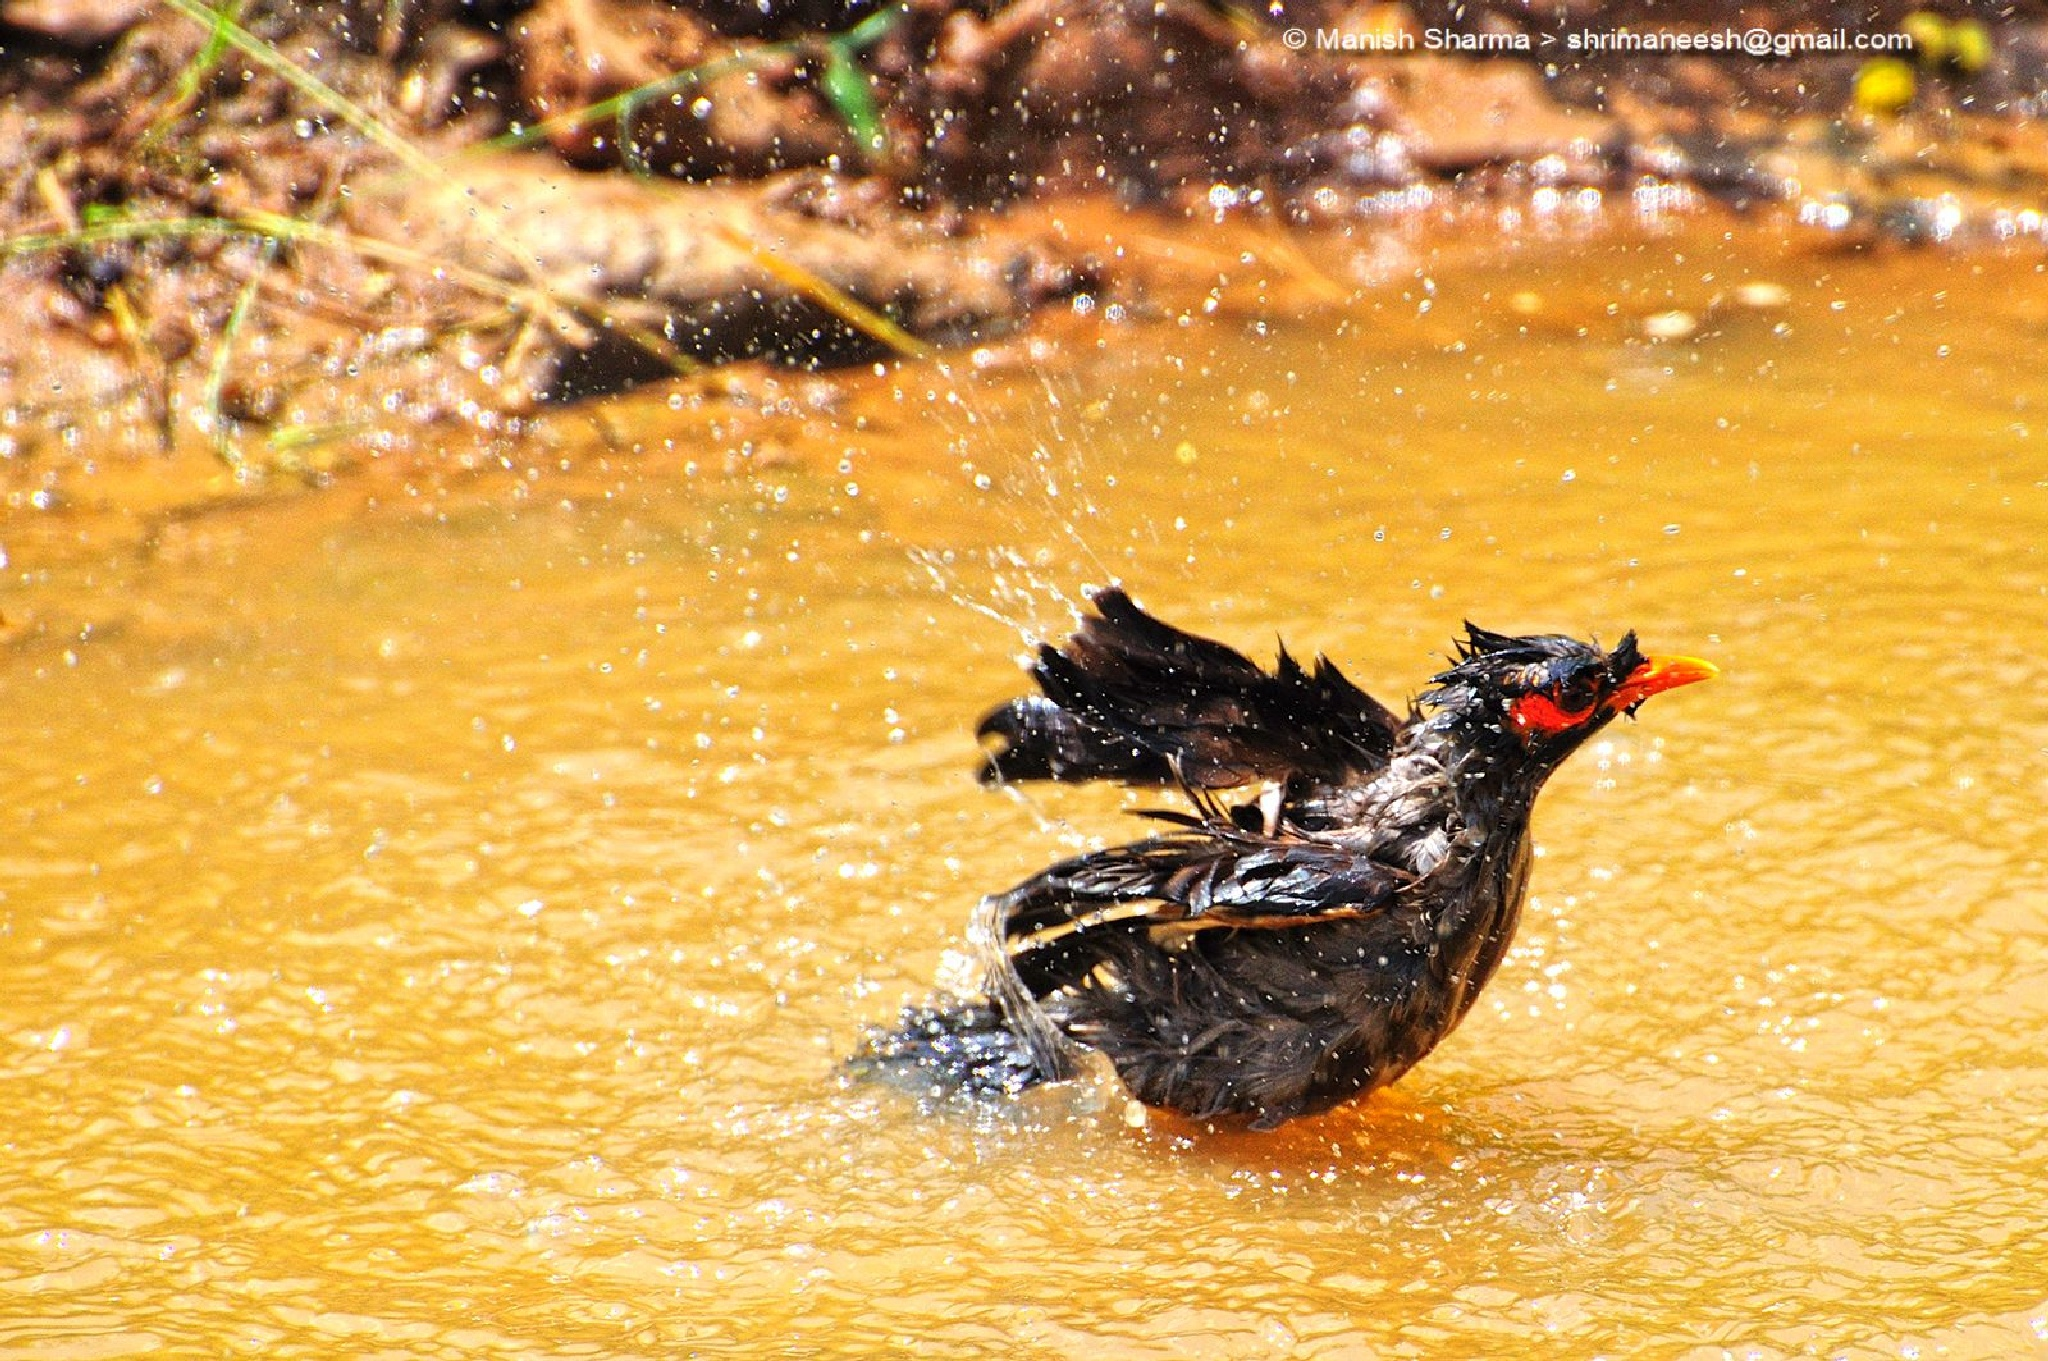 Common Myna while bathing ... Scientific name: Acridotheres tristis by Maneesh Sharma